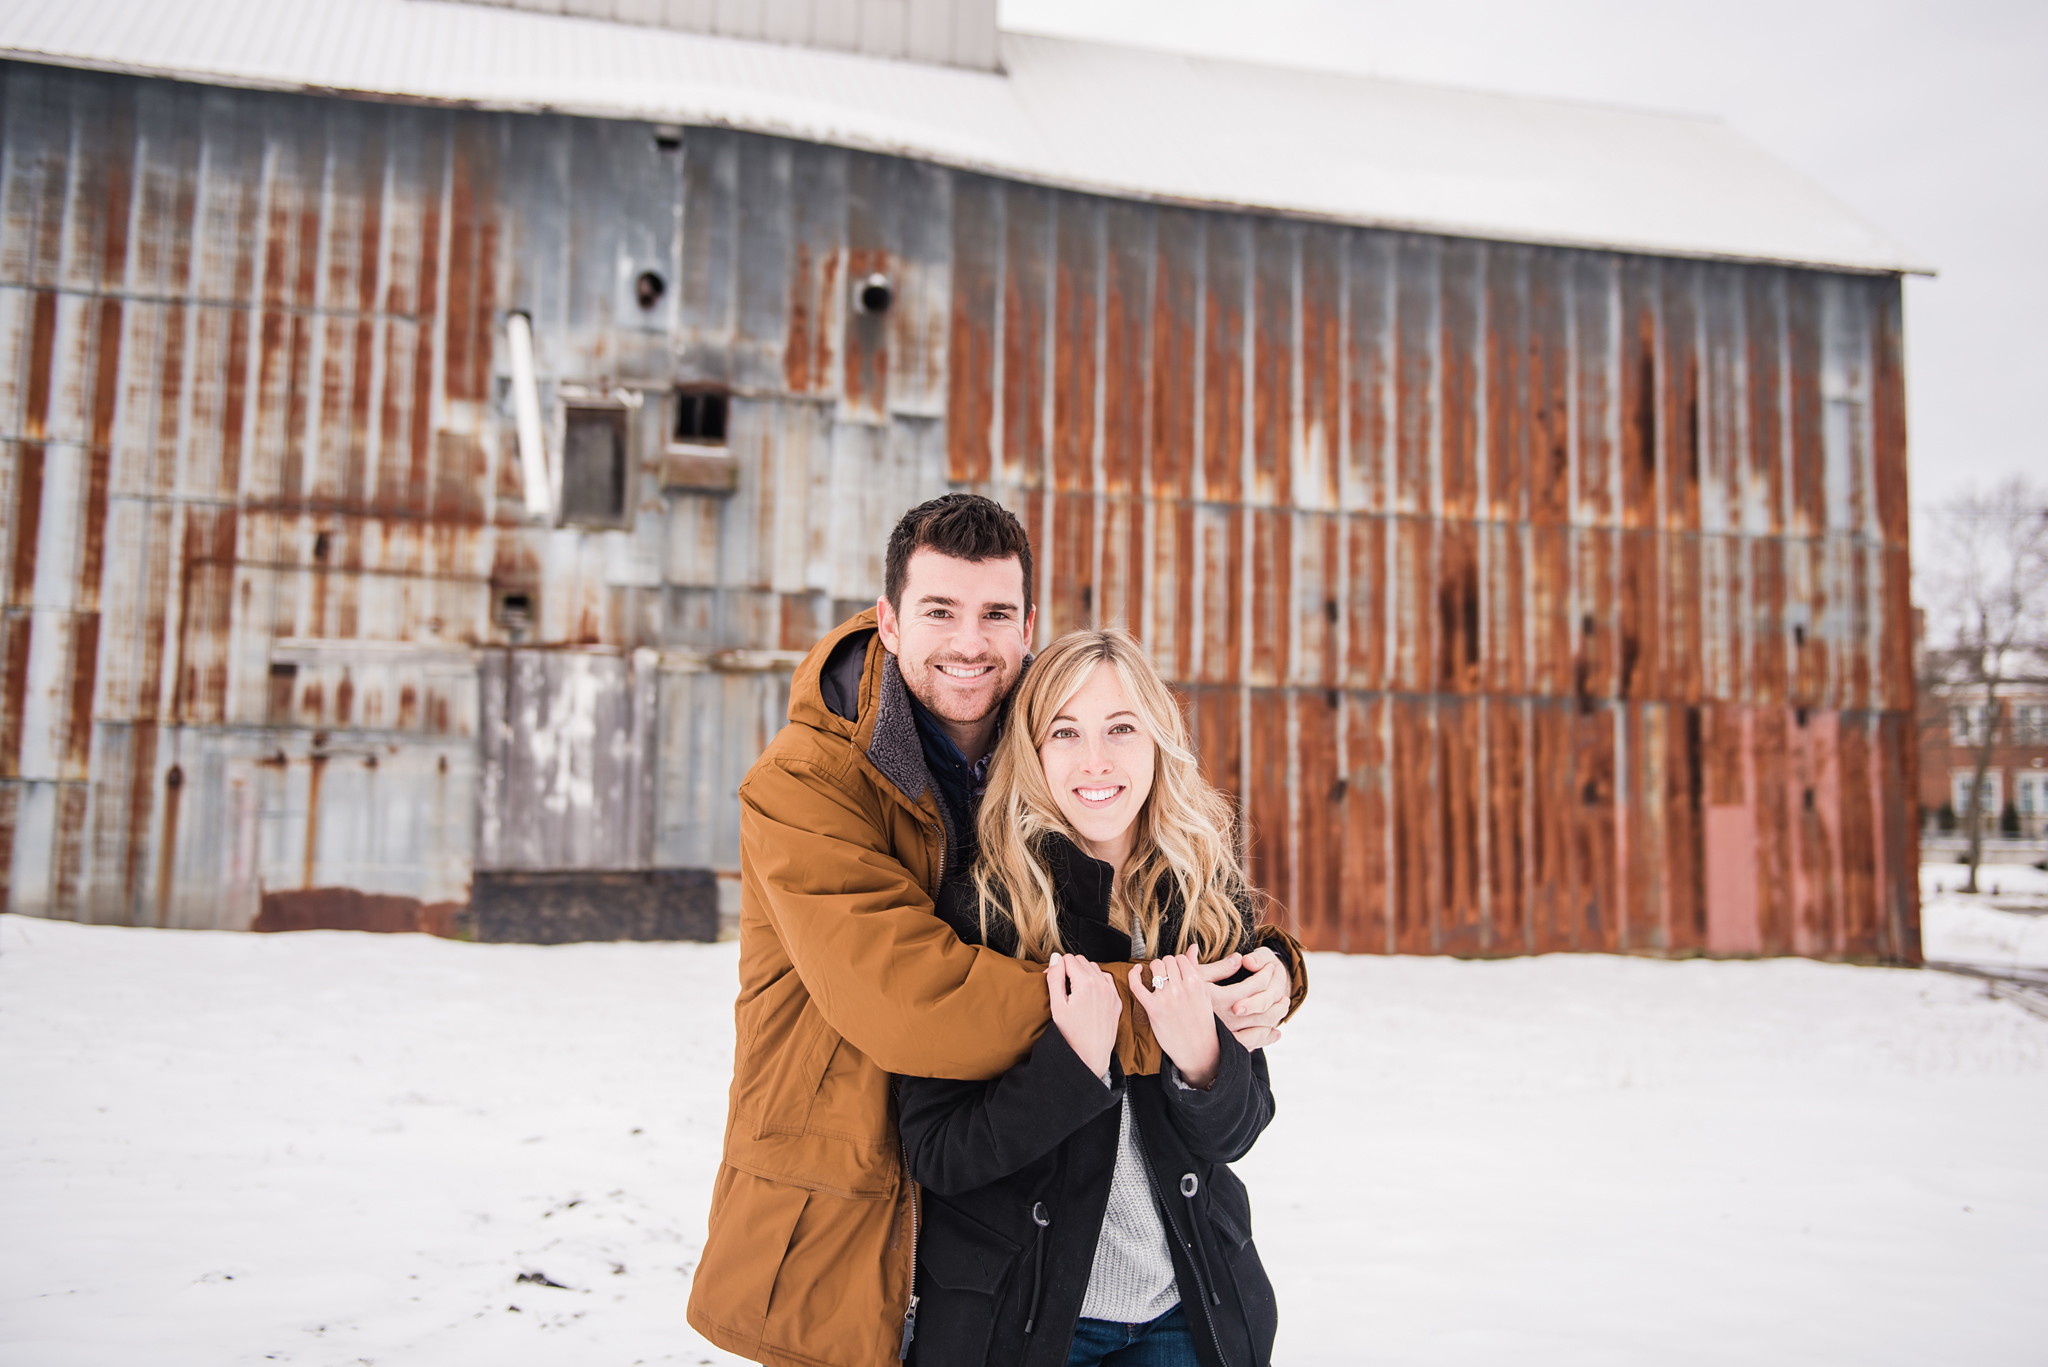 Schoen_Place_Rochester_Engagement_Session_JILL_STUDIO_Rochester_NY_Photographer_DSC_1132.jpg